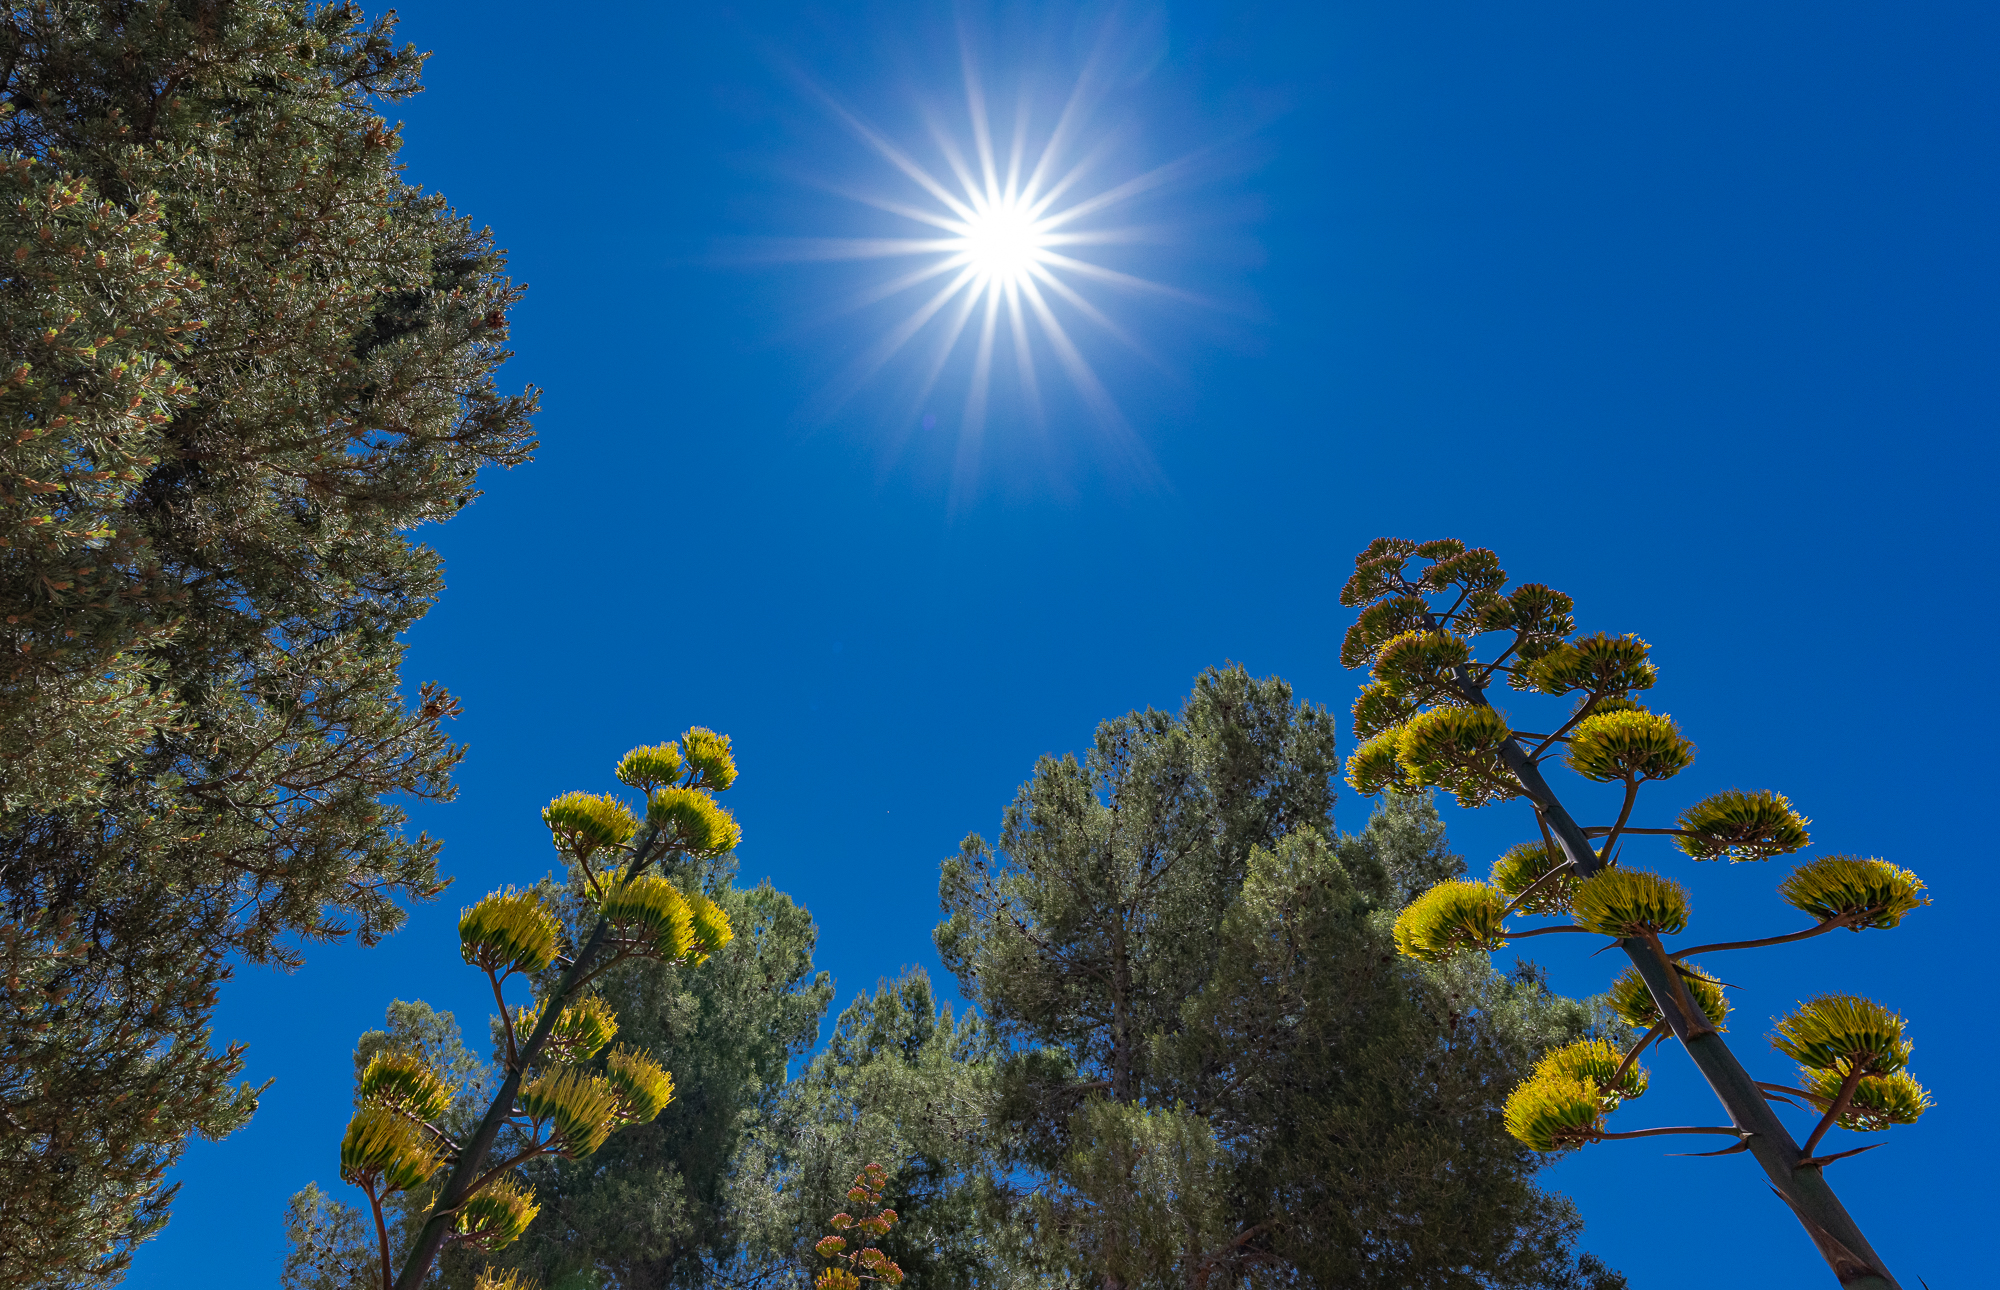 Stand of Agaves and Pines, and a Blazing Sun